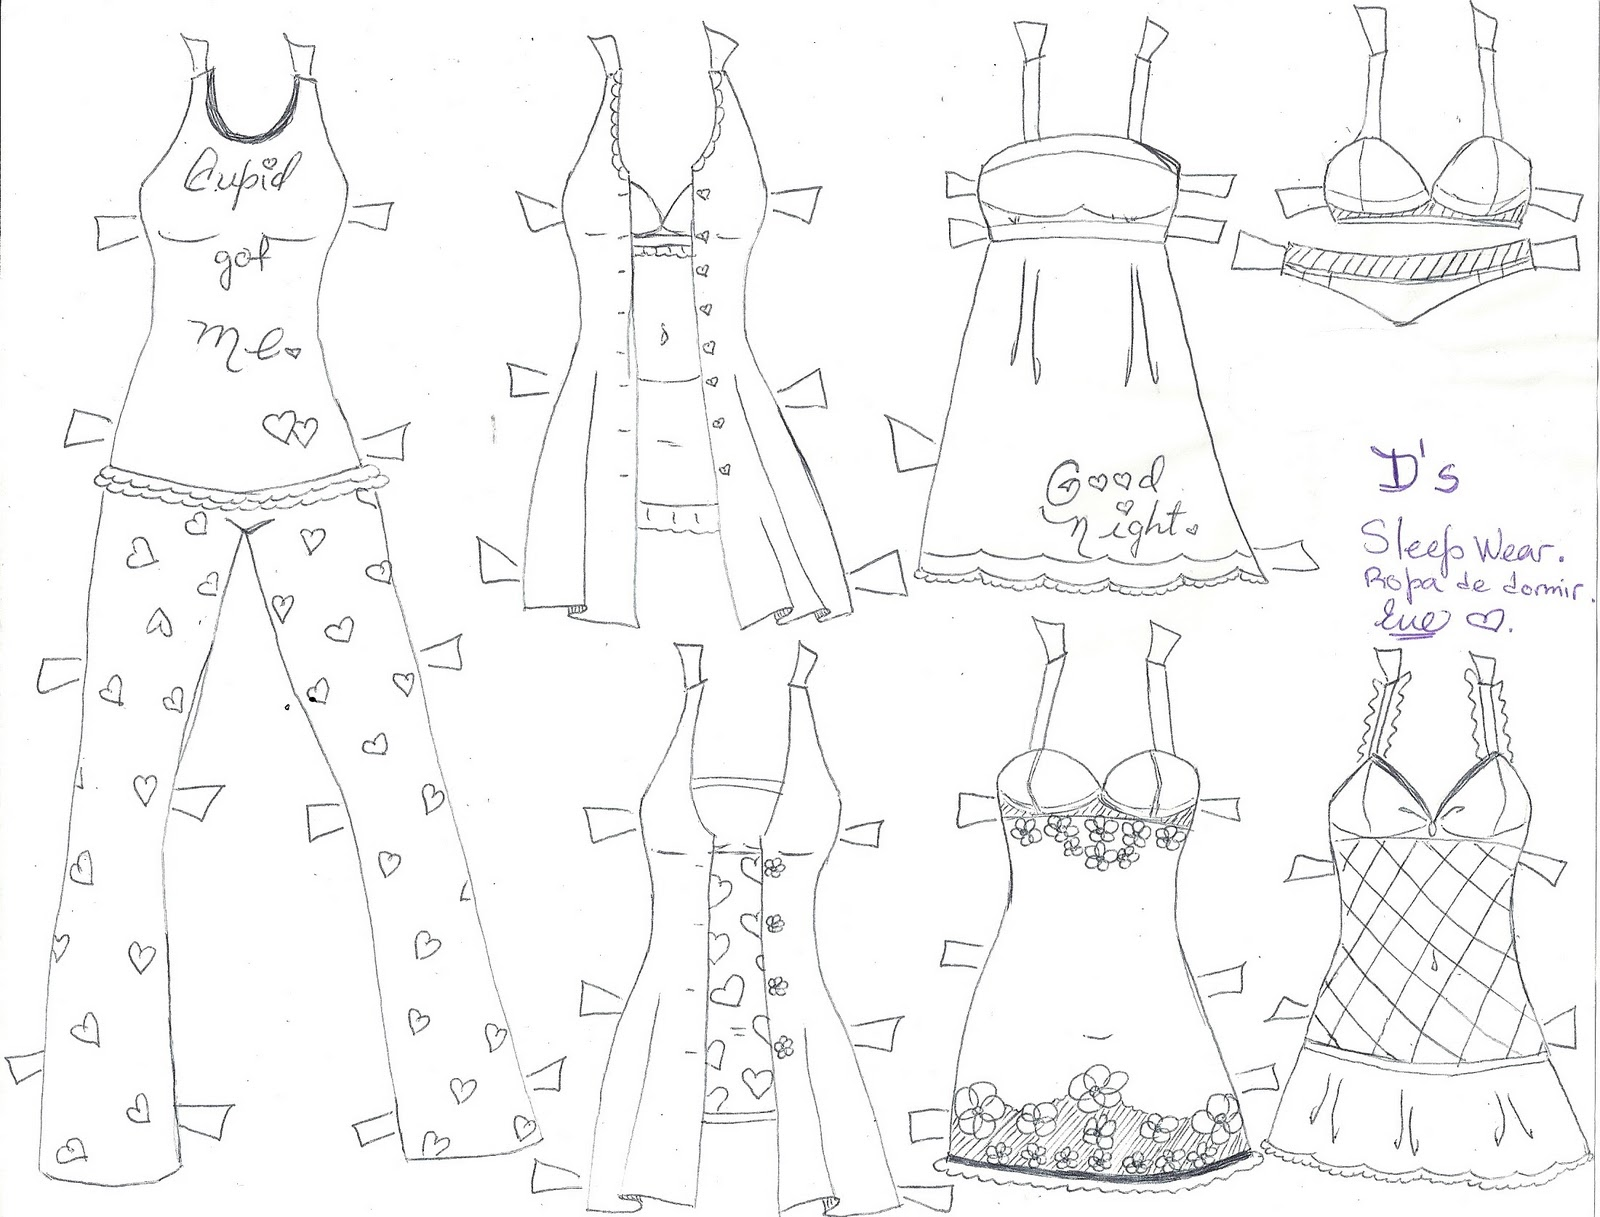 paper doll eve a girl dreams d the paper doll mini